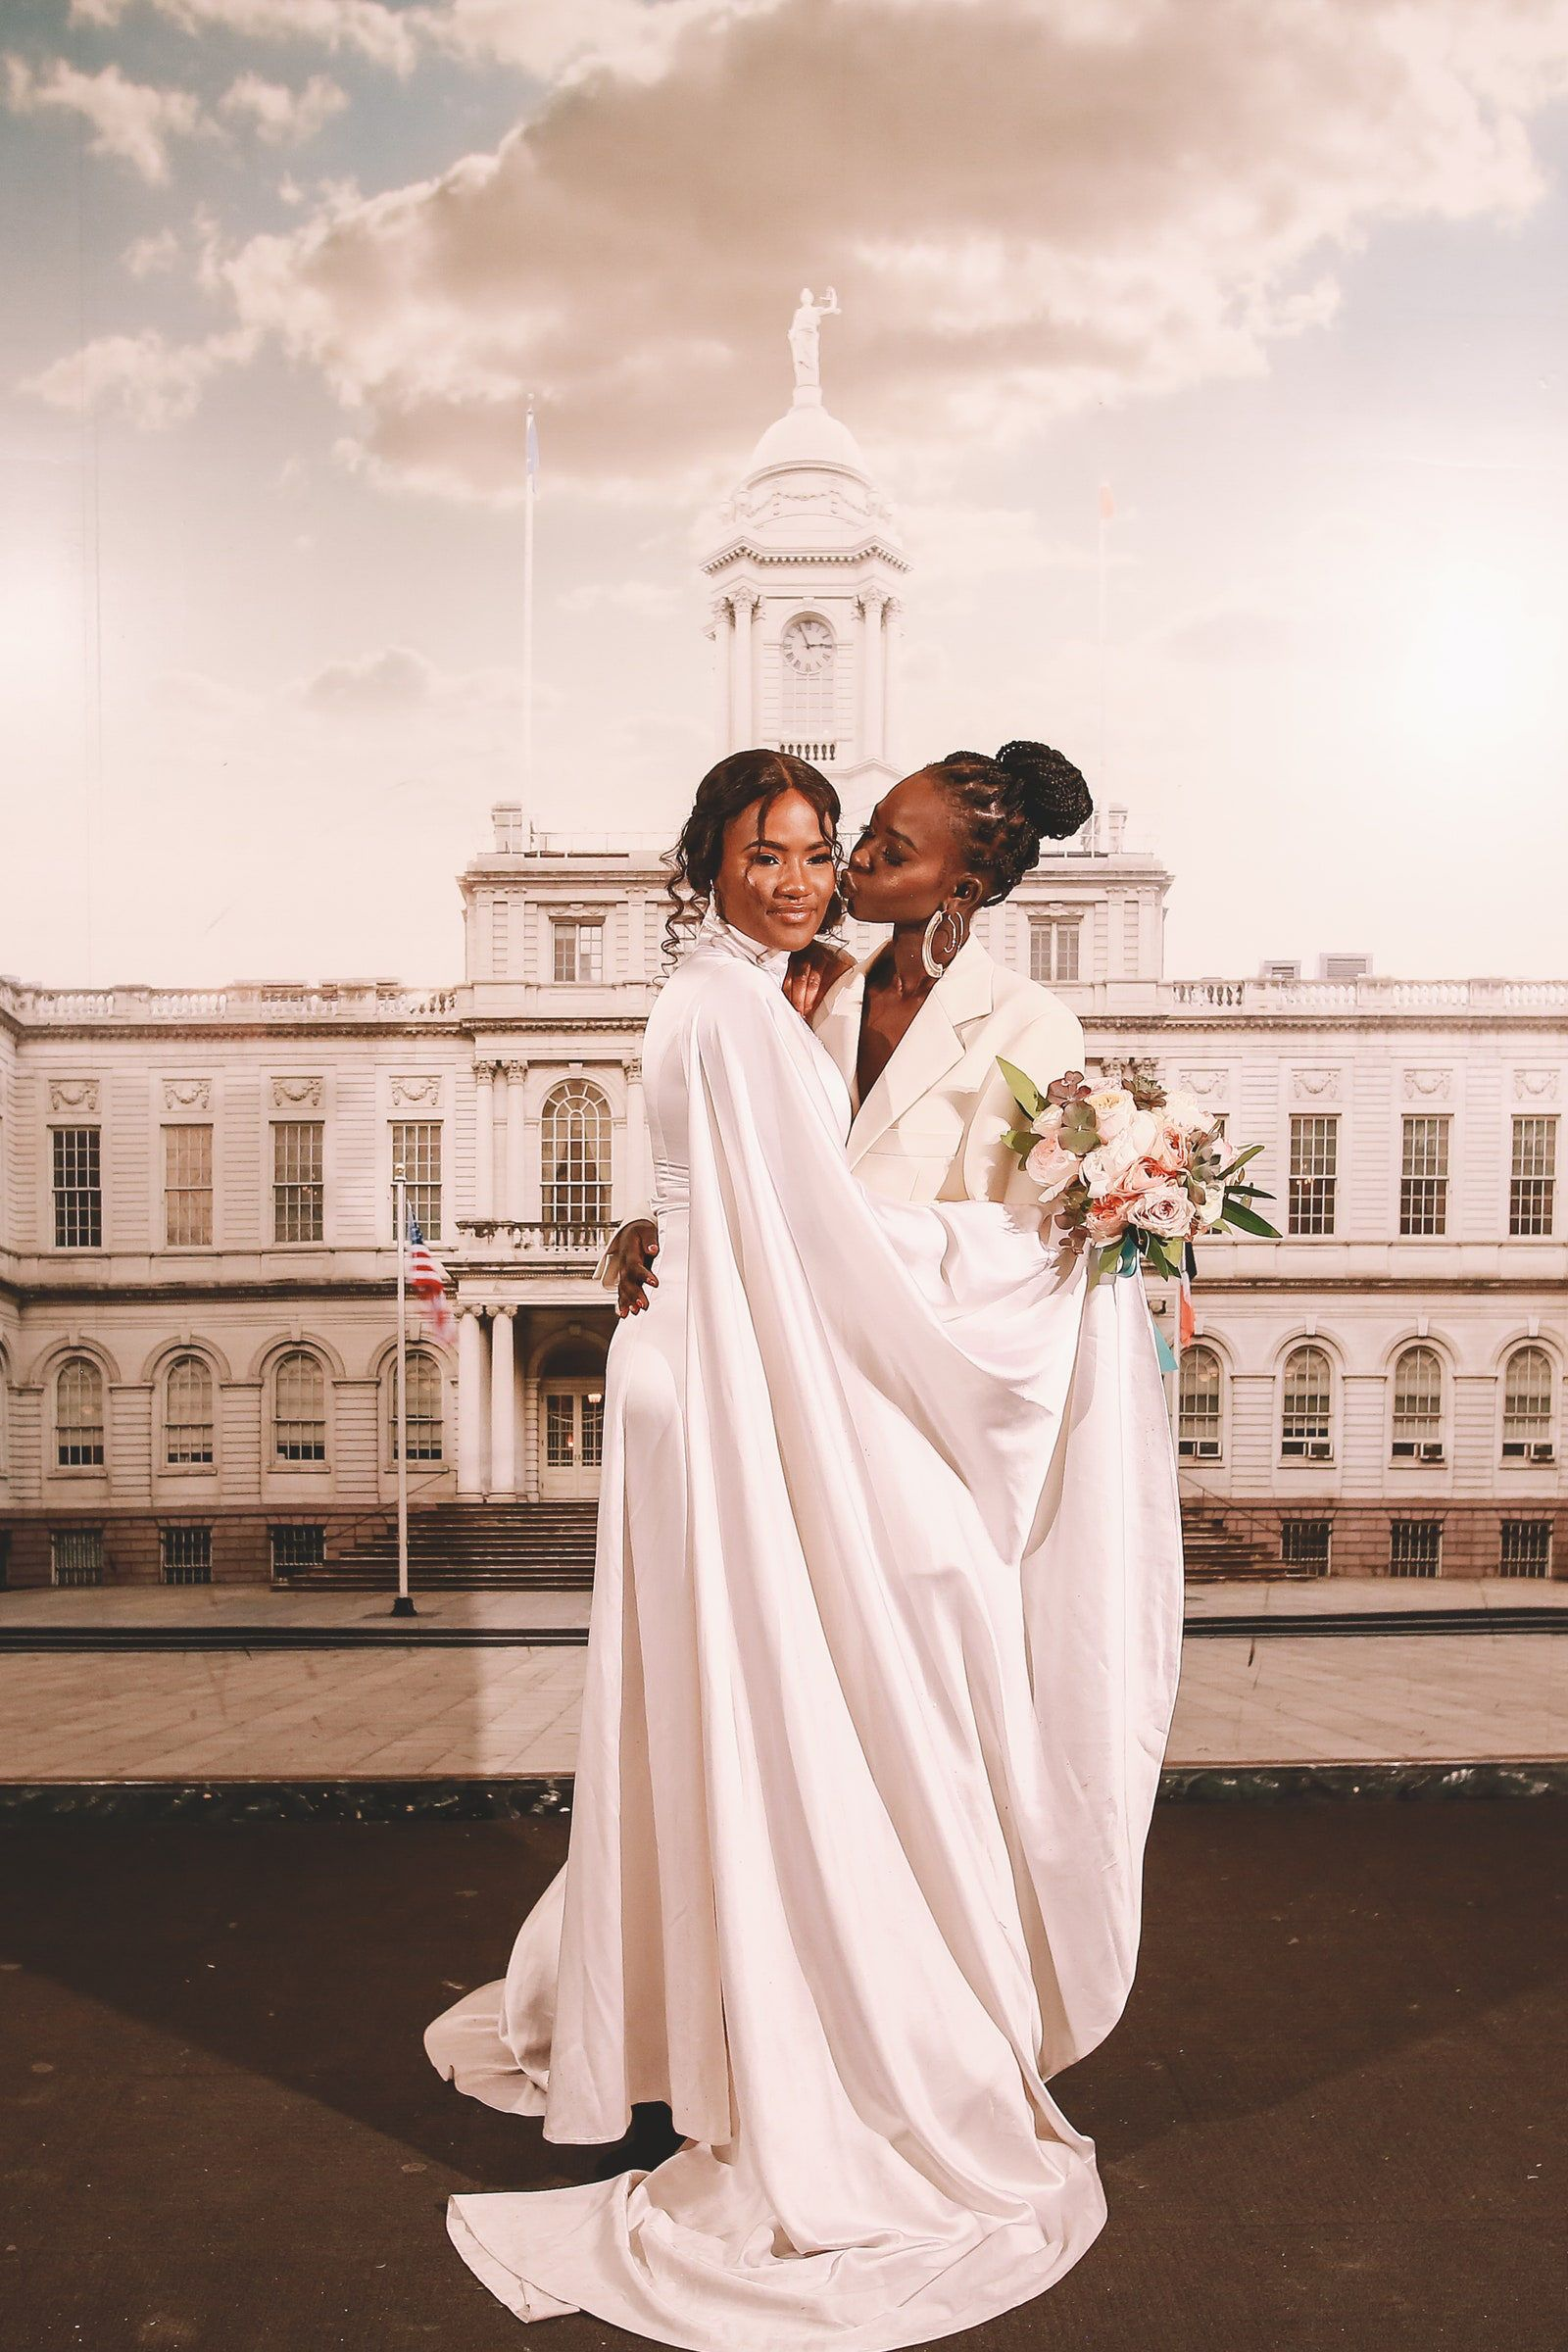 After Marrying At City Hall Model Aweng Ade Chuol And Alexus Ade Chuol Commemorated The Day With Tattoos And Pizza In 2020 Wedding City Hall Wedding Vogue Wedding